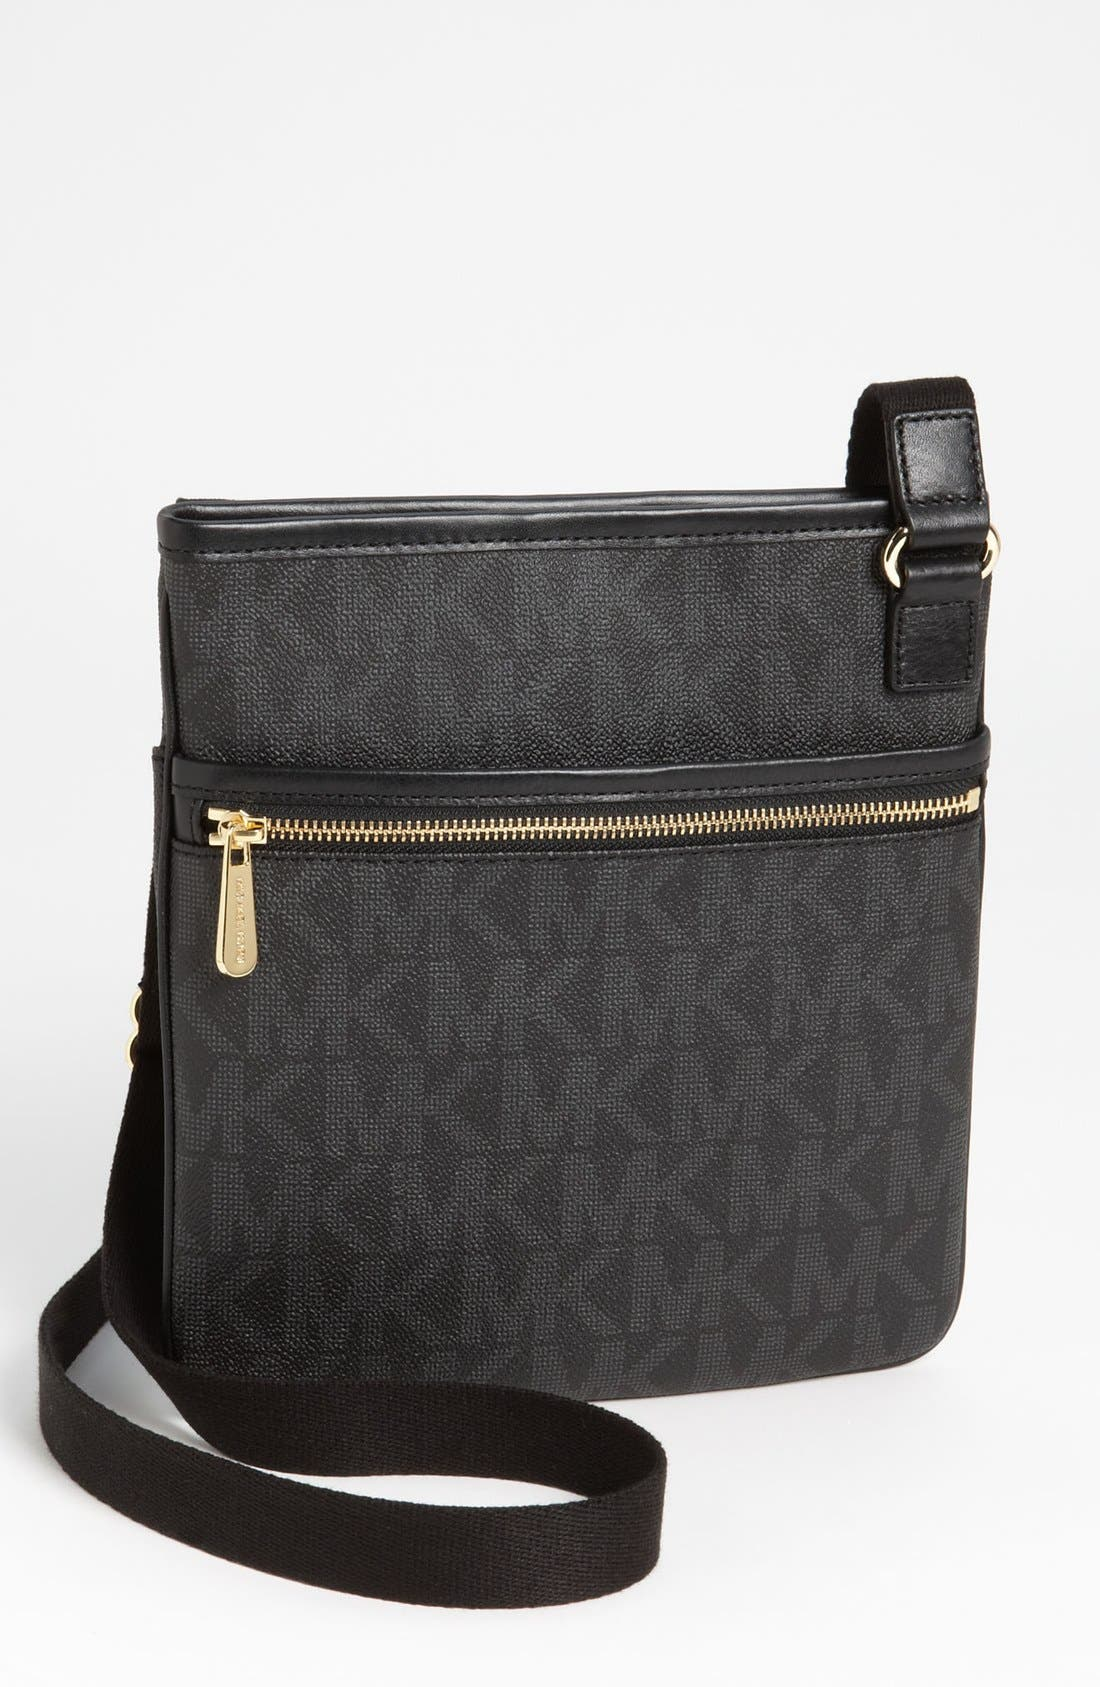 Alternate Image 1 Selected - MICHAEL Michael Kors 'Signature' Crossbody Bag